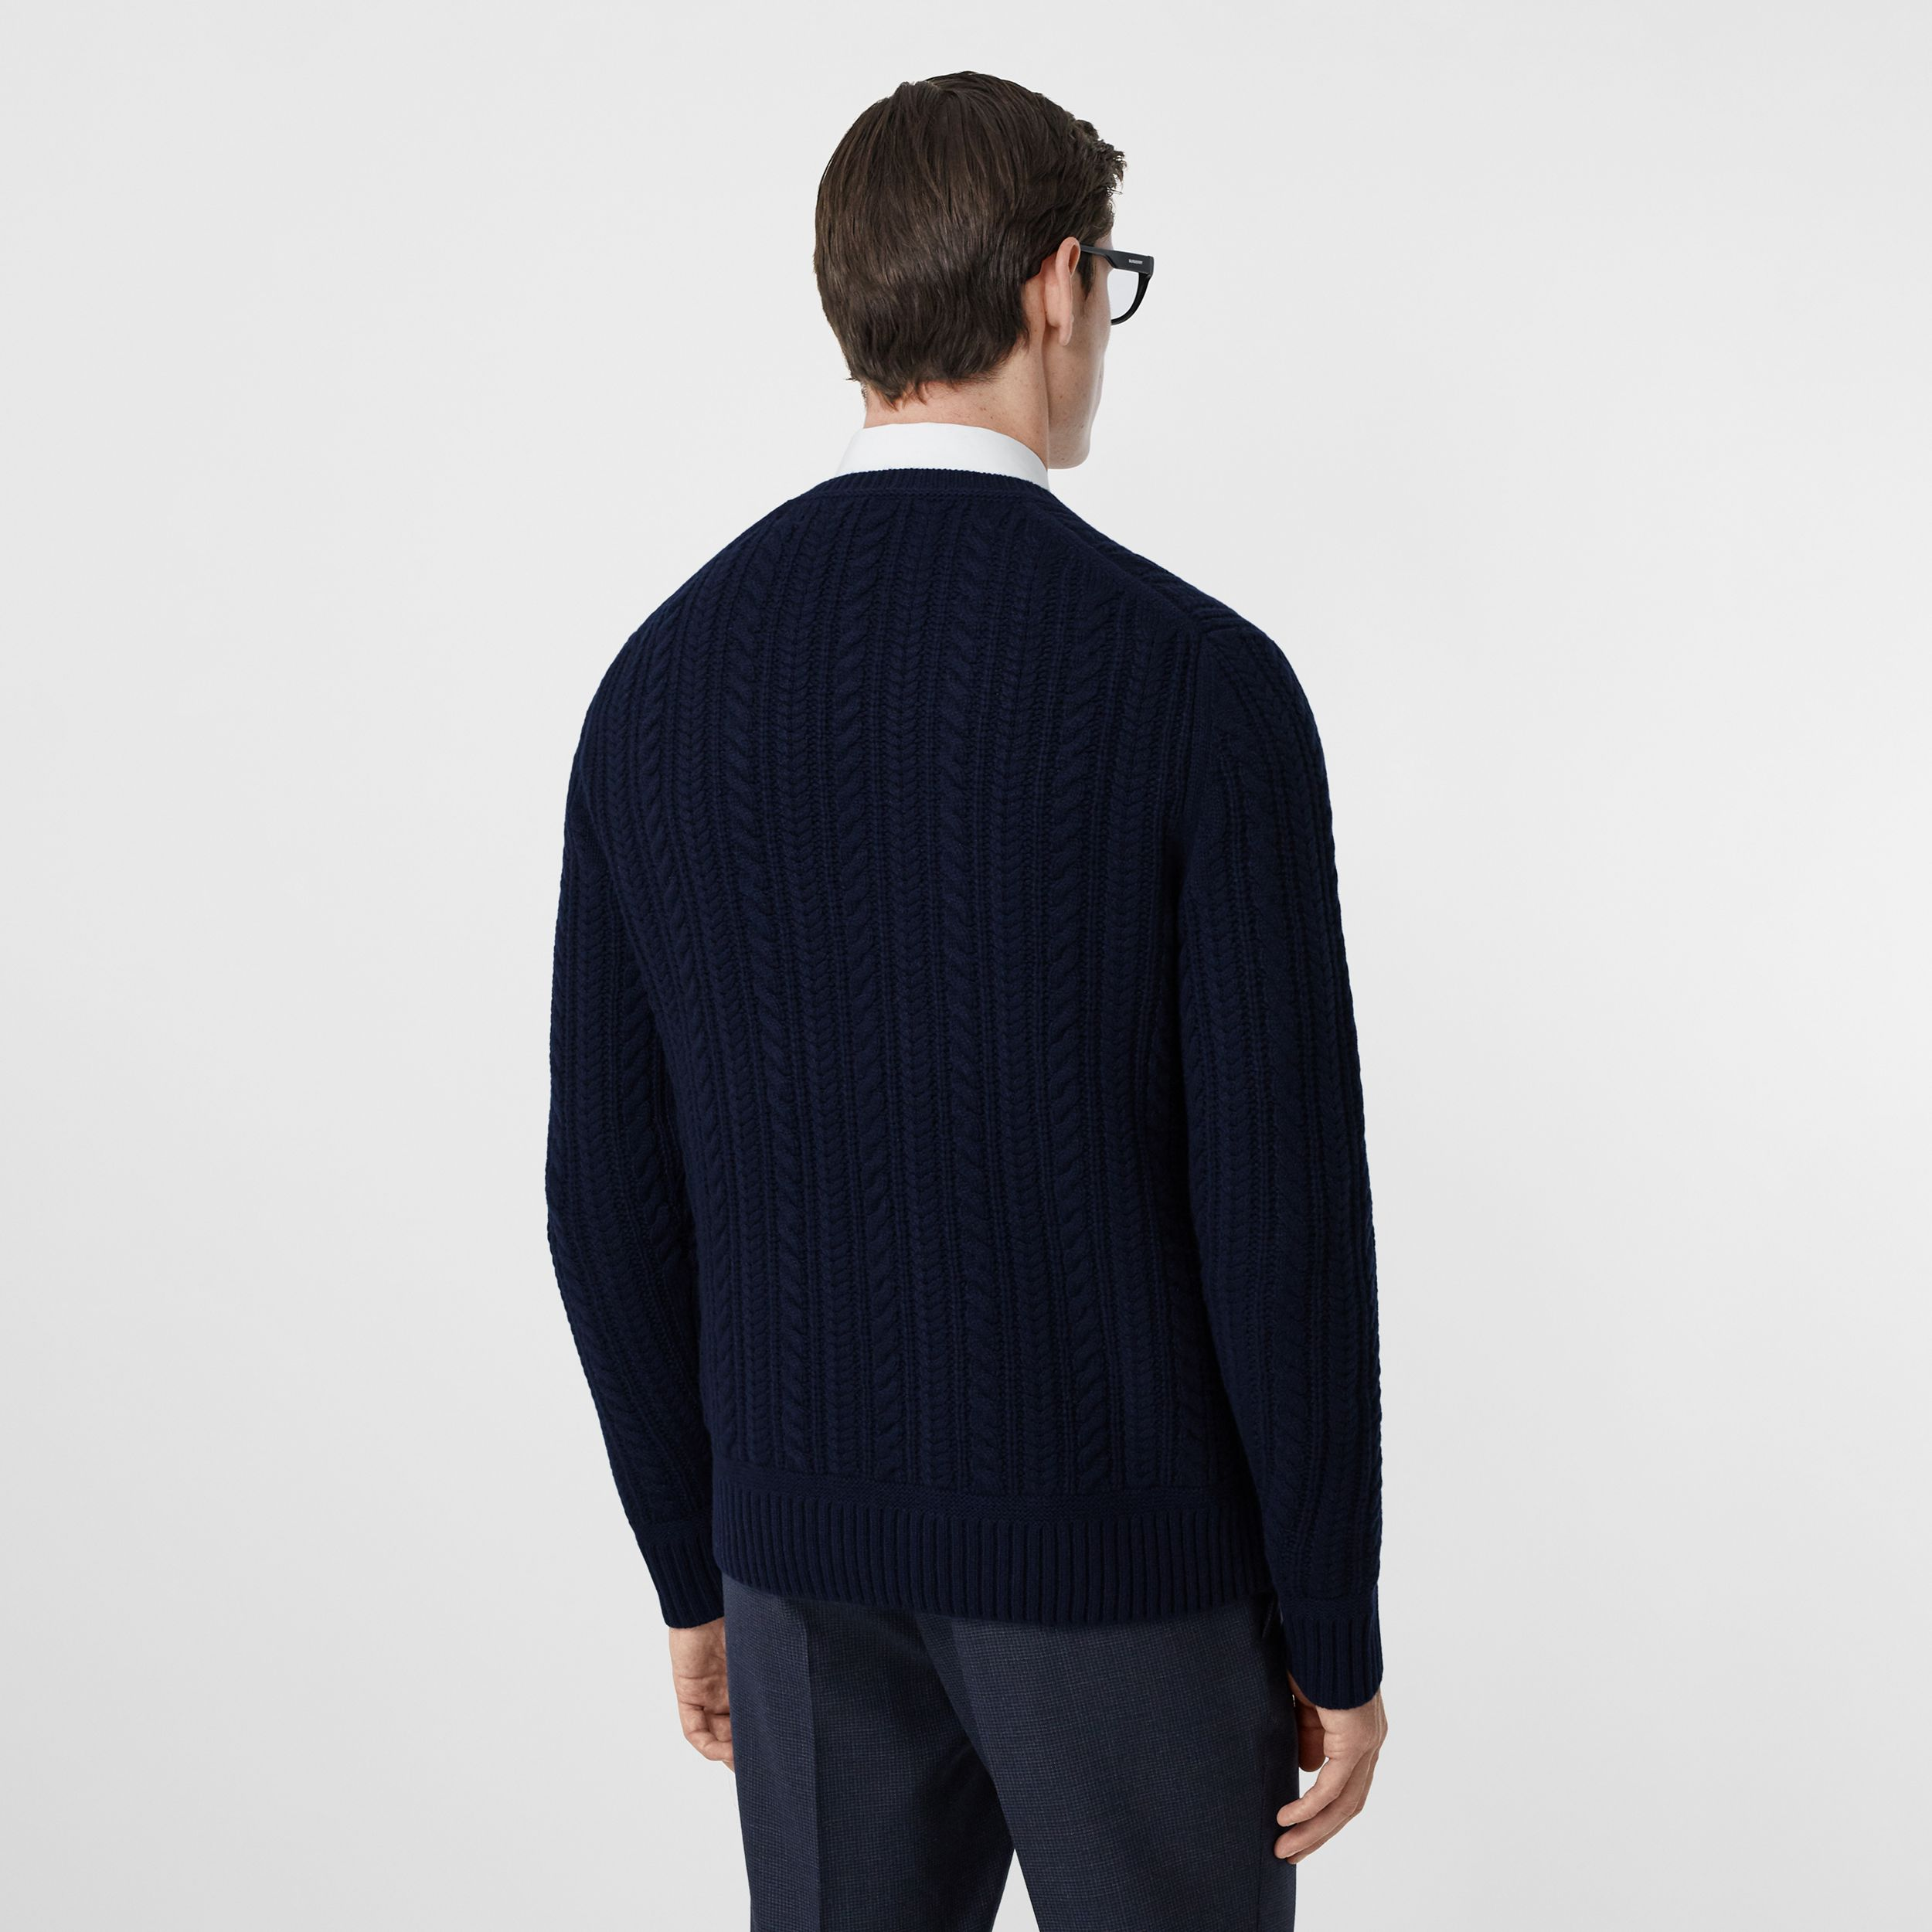 Cable Knit Cashmere Sweater in Navy - Men | Burberry - 3